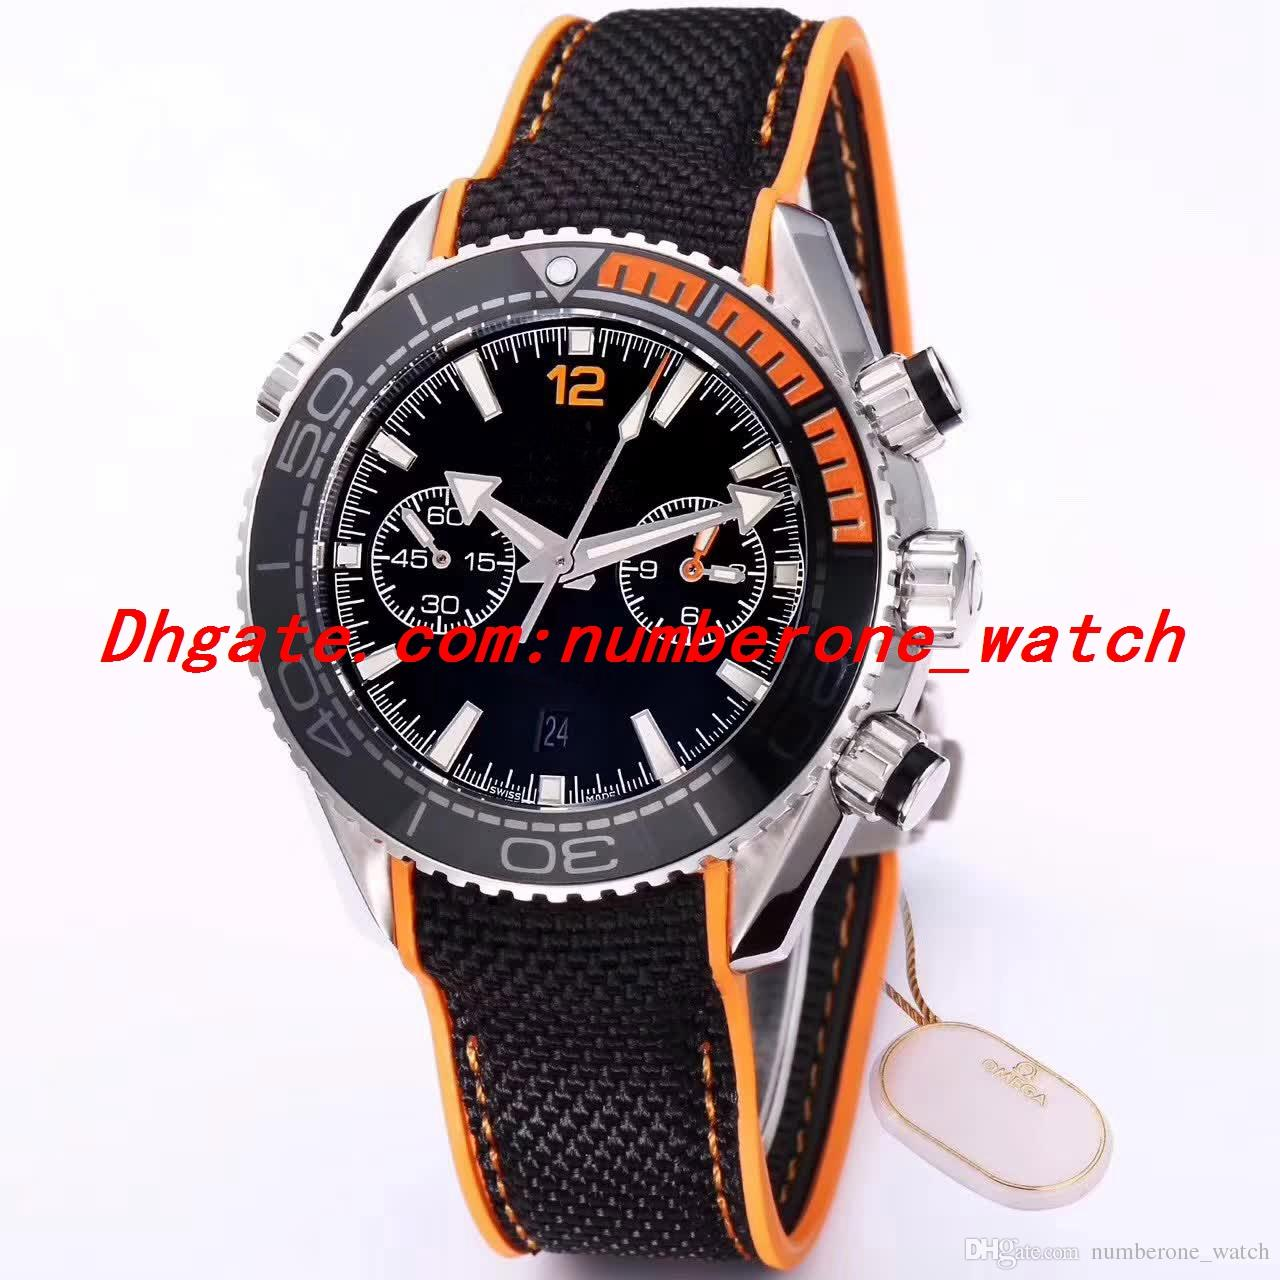 Best Edition BF 45.5mm Planet 232.90.46.51.03.001 CAL.9900 Movement Chronograph Ceramic Bezel Automatic Mens Watch